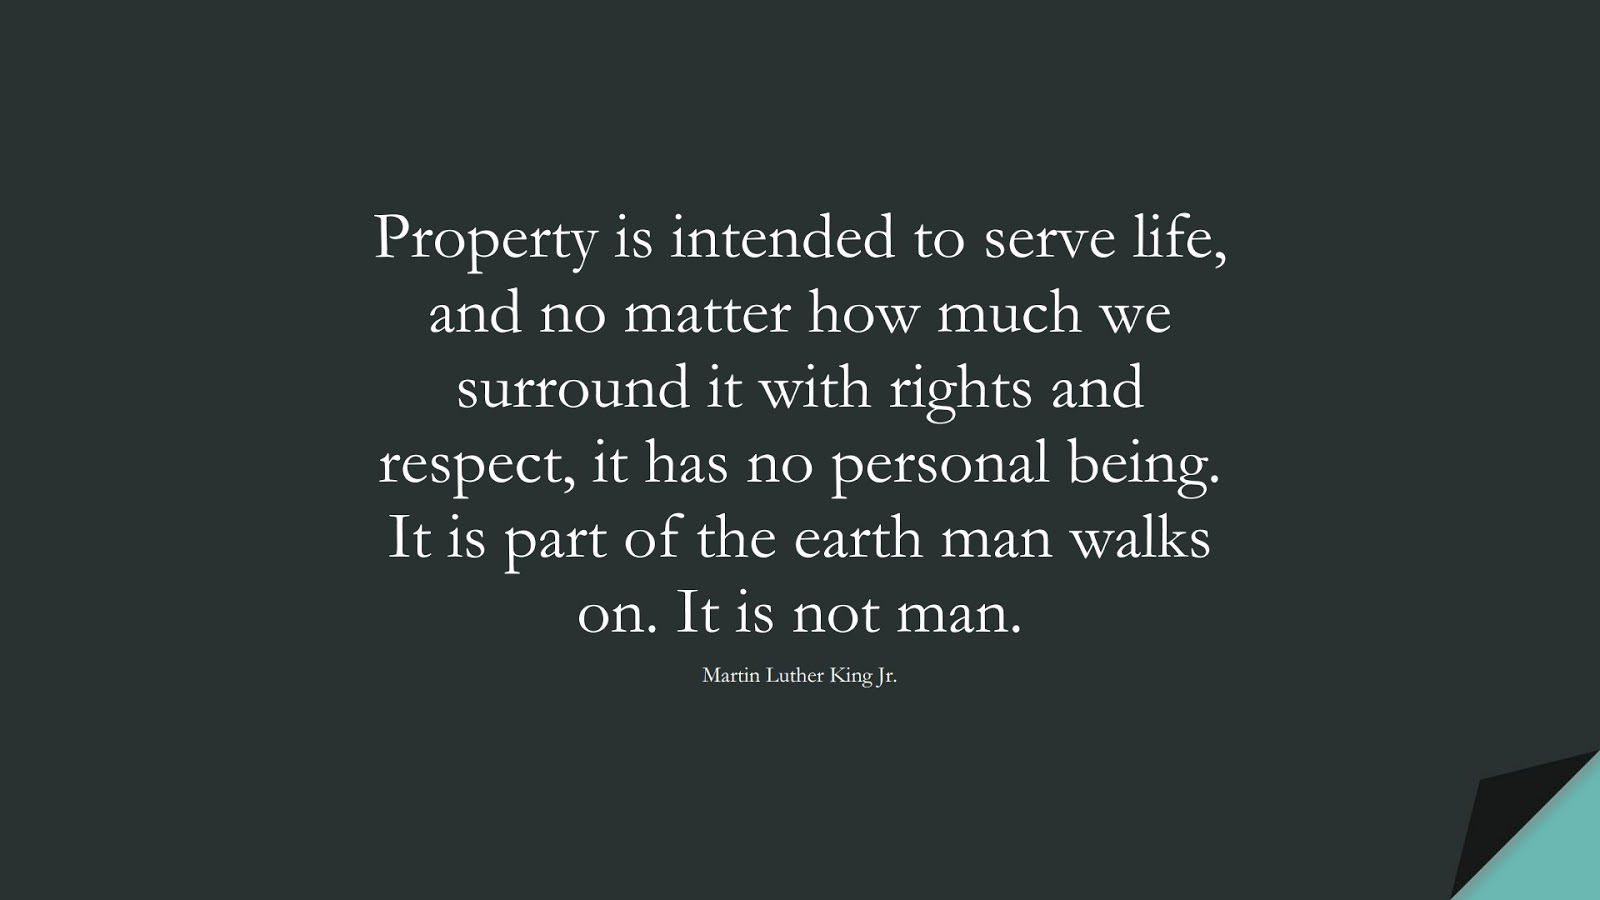 Property is intended to serve life, and no matter how much we surround it with rights and respect, it has no personal being. It is part of the earth man walks on. It is not man. (Martin Luther King Jr.);  #MartinLutherKingJrQuotes